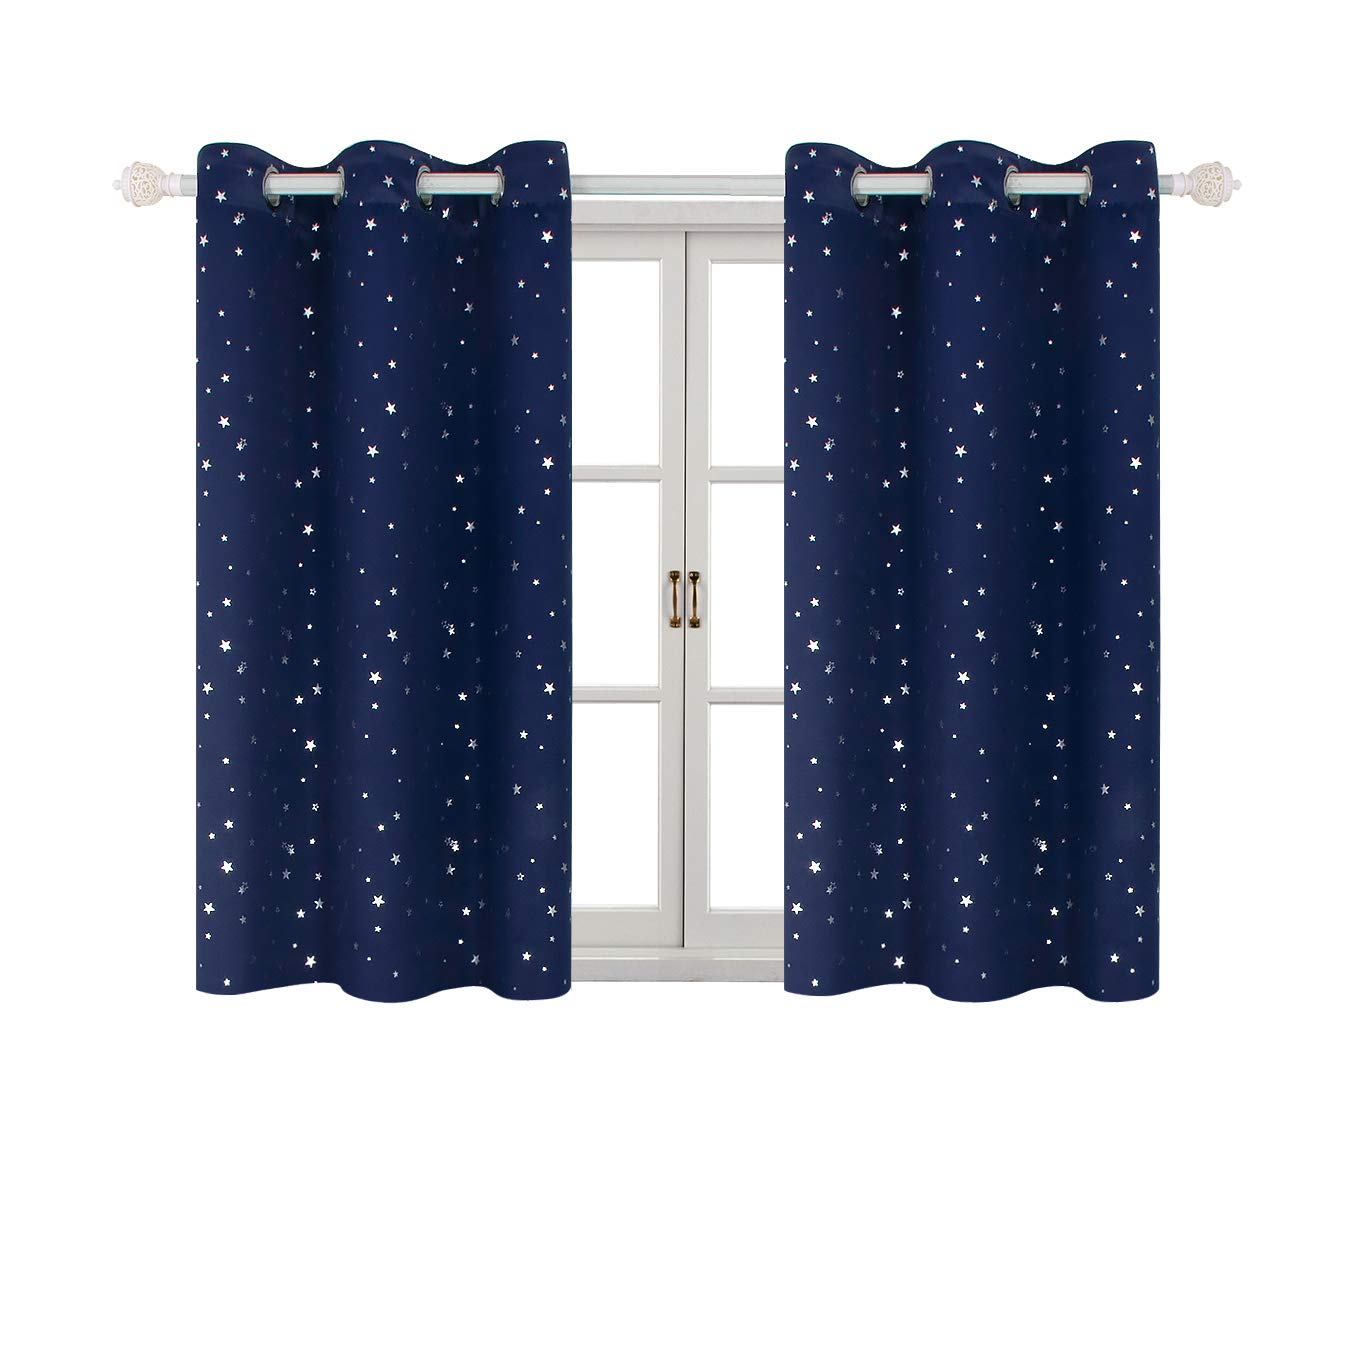 BGment Twinkle Star Printed Blackout Curtains for Kids Bedroom - Night Sky Space Thermal Insulated Room Darkening Curtains for Children Nursery, Grommet, 2 Panels (42 x 63 Inch, Beige)